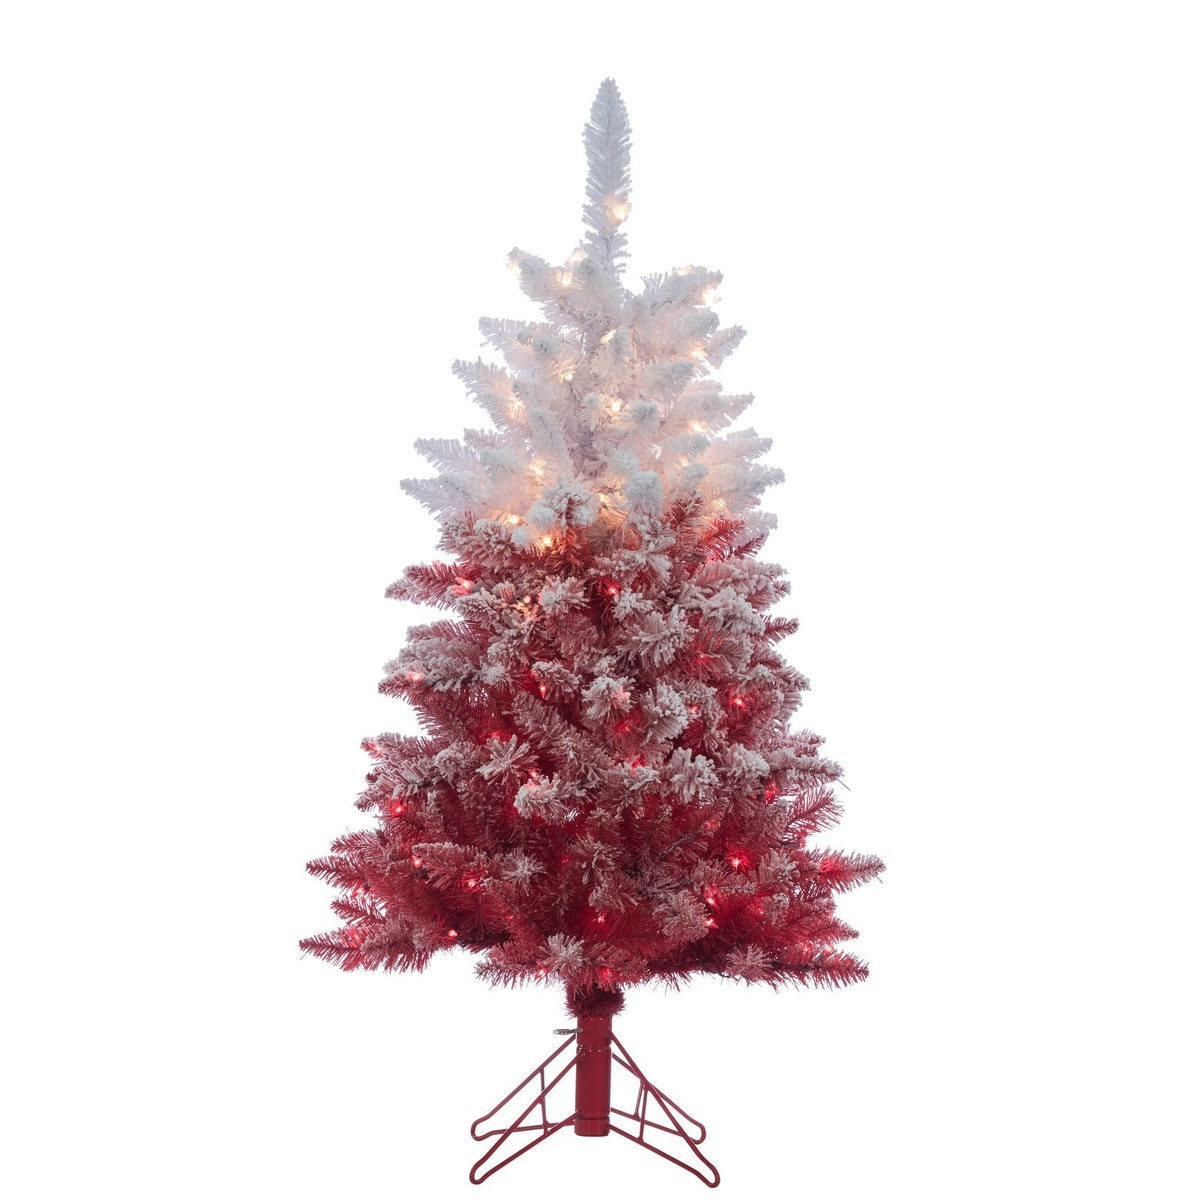 Gerson 4Ft. Flocked Red Ombre Tree with 150 Clear Lights